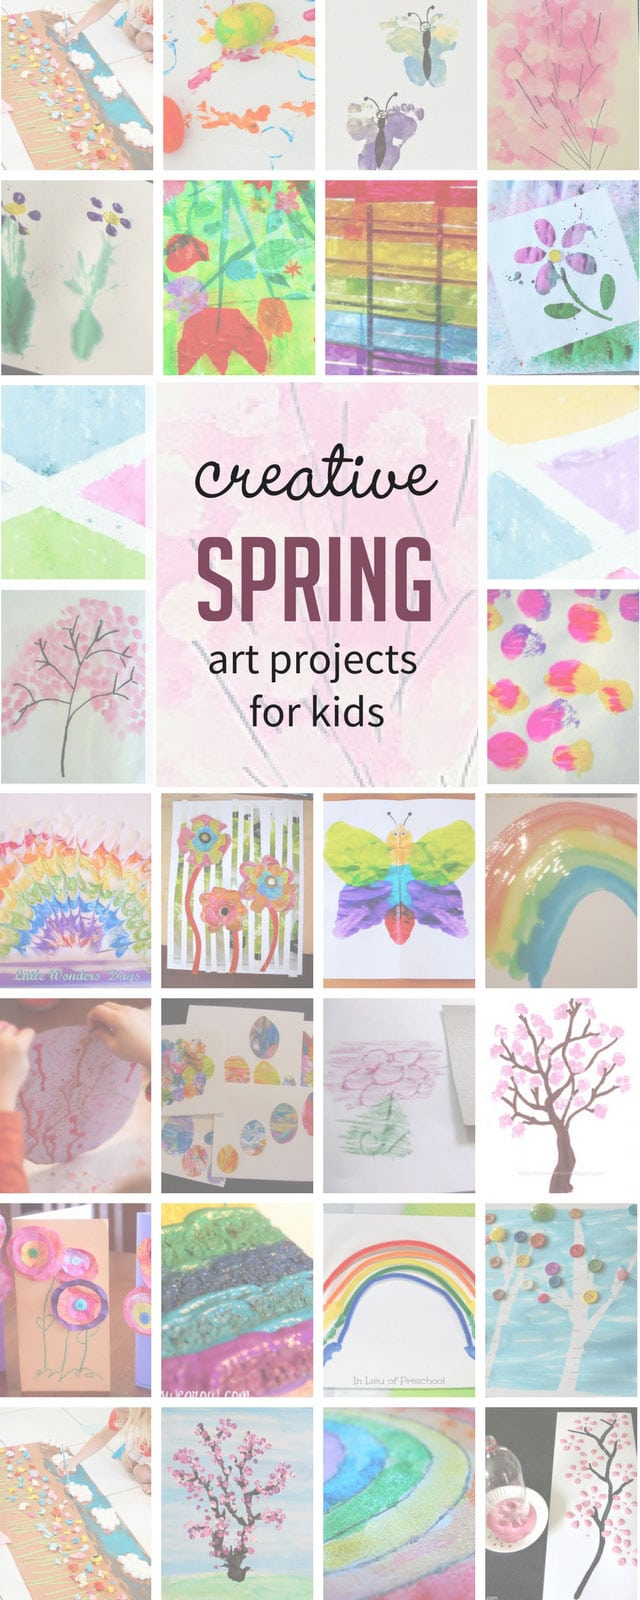 Celebrate spring with 27 spring art projects for kids! These are perfect for children of all ages!